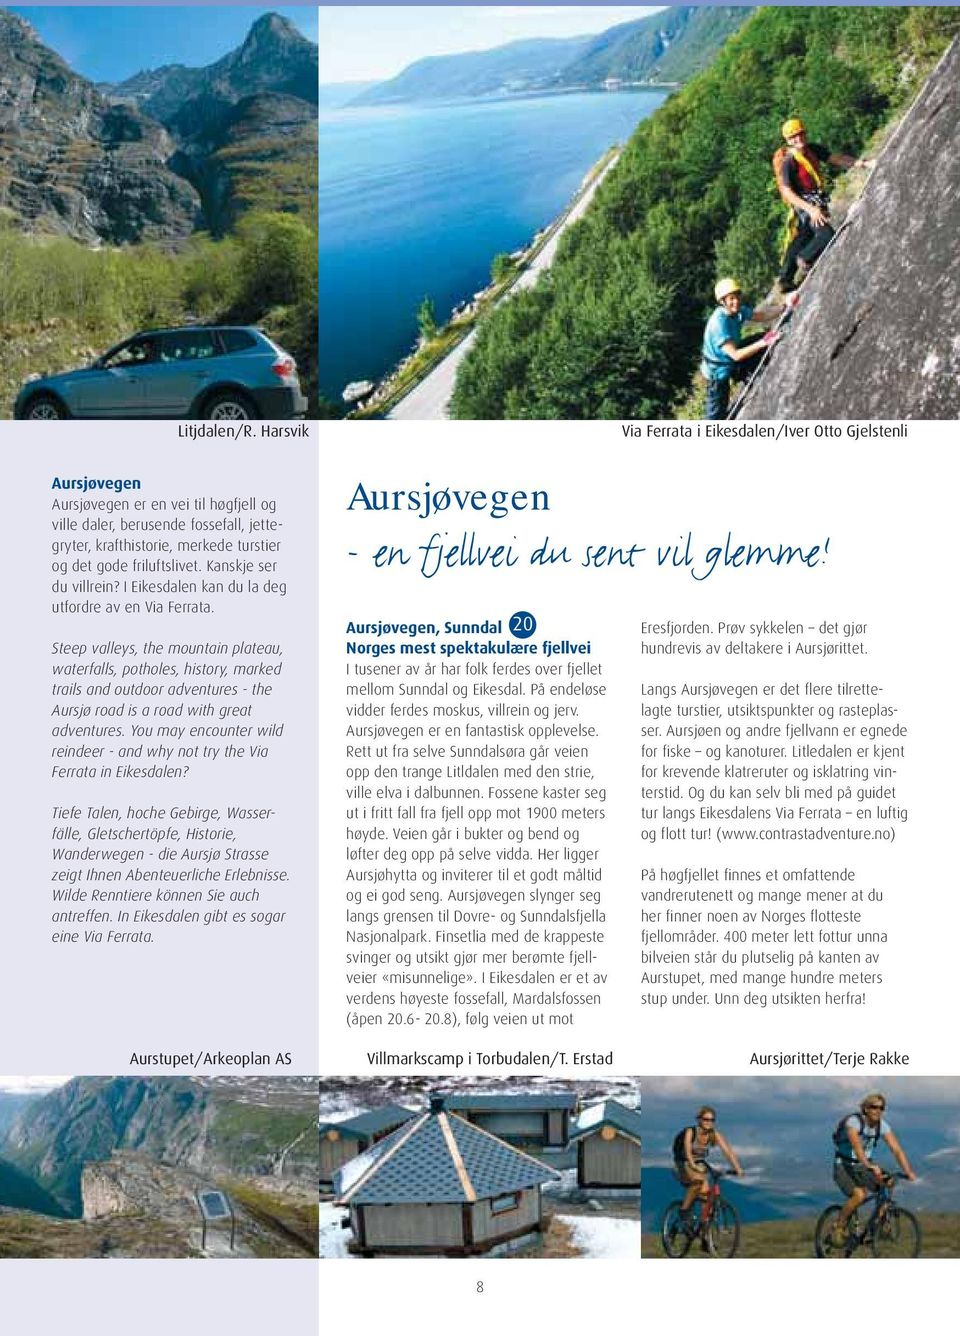 Steep valleys, the mountain plateau, waterfalls, potholes, history, marked trails and outdoor adventures - the Aursjø road is a road with great adventures.